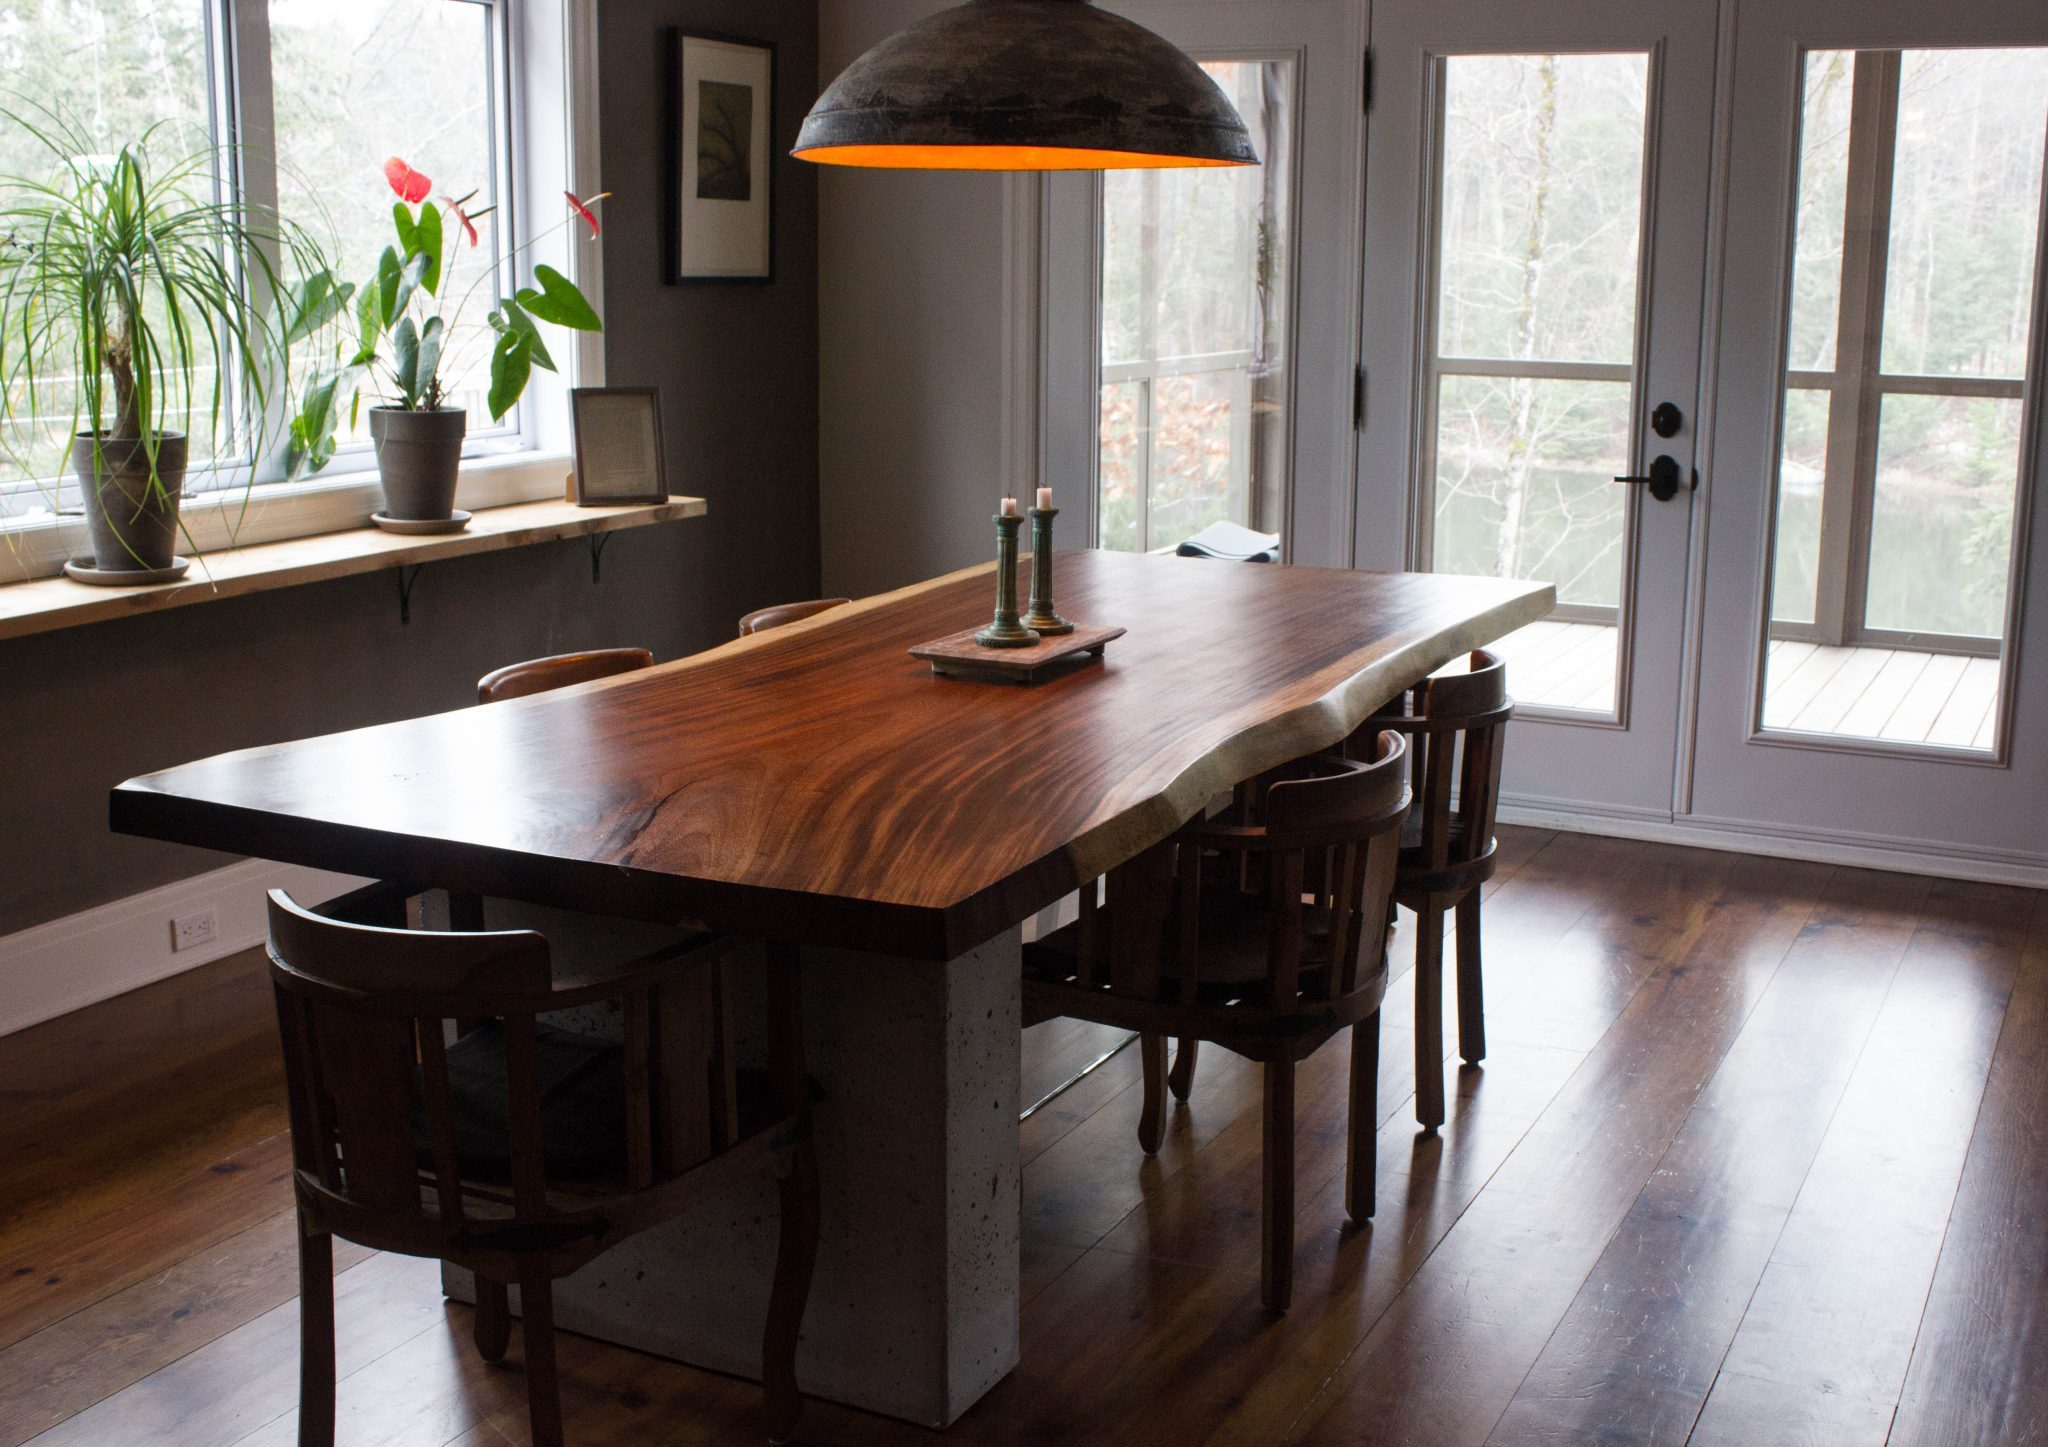 extendable house inspiration applied pinterest lovable your intended kitchen to for countertop ideas tables dining